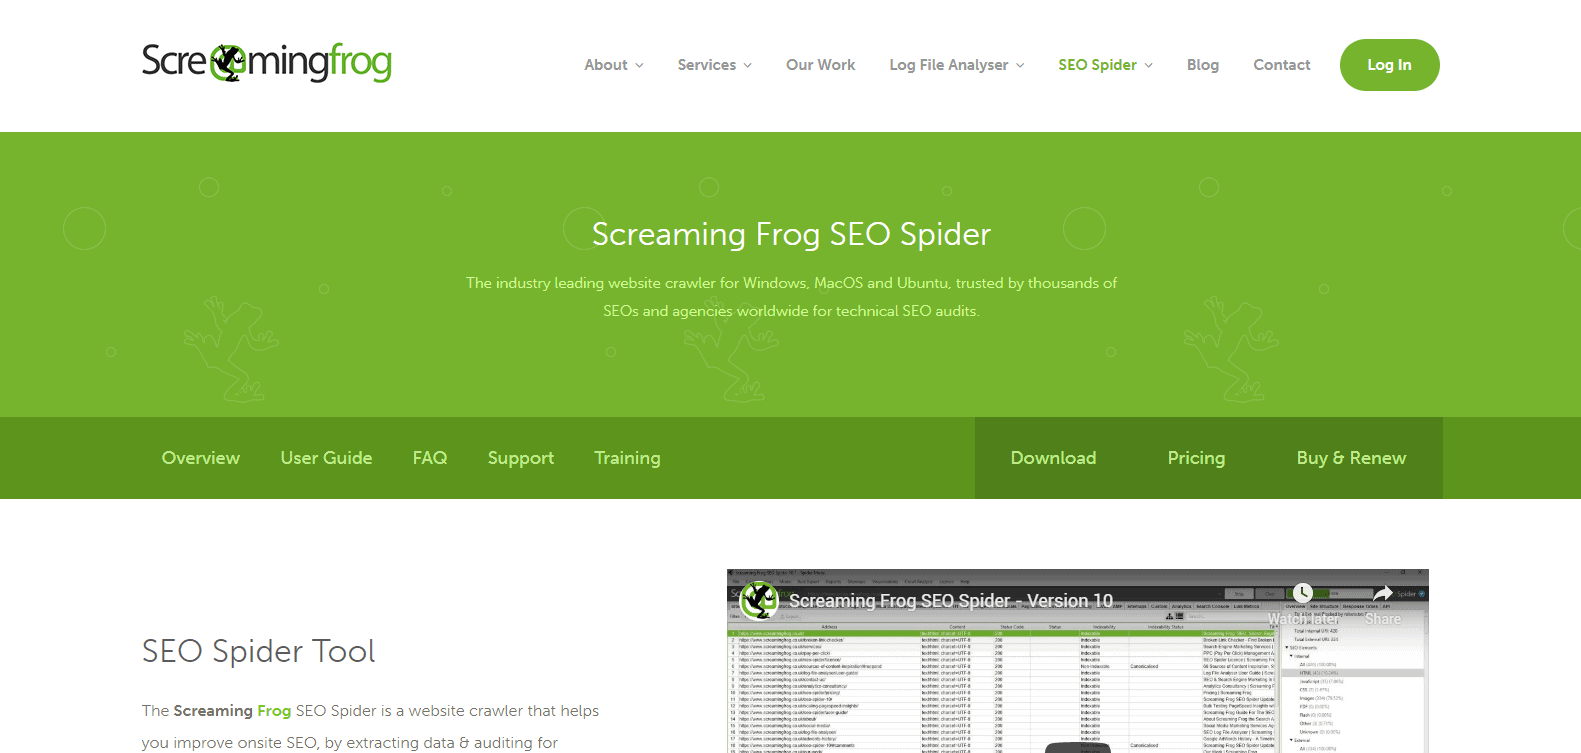 link audit - 4 fix 404 - screaming frog_1